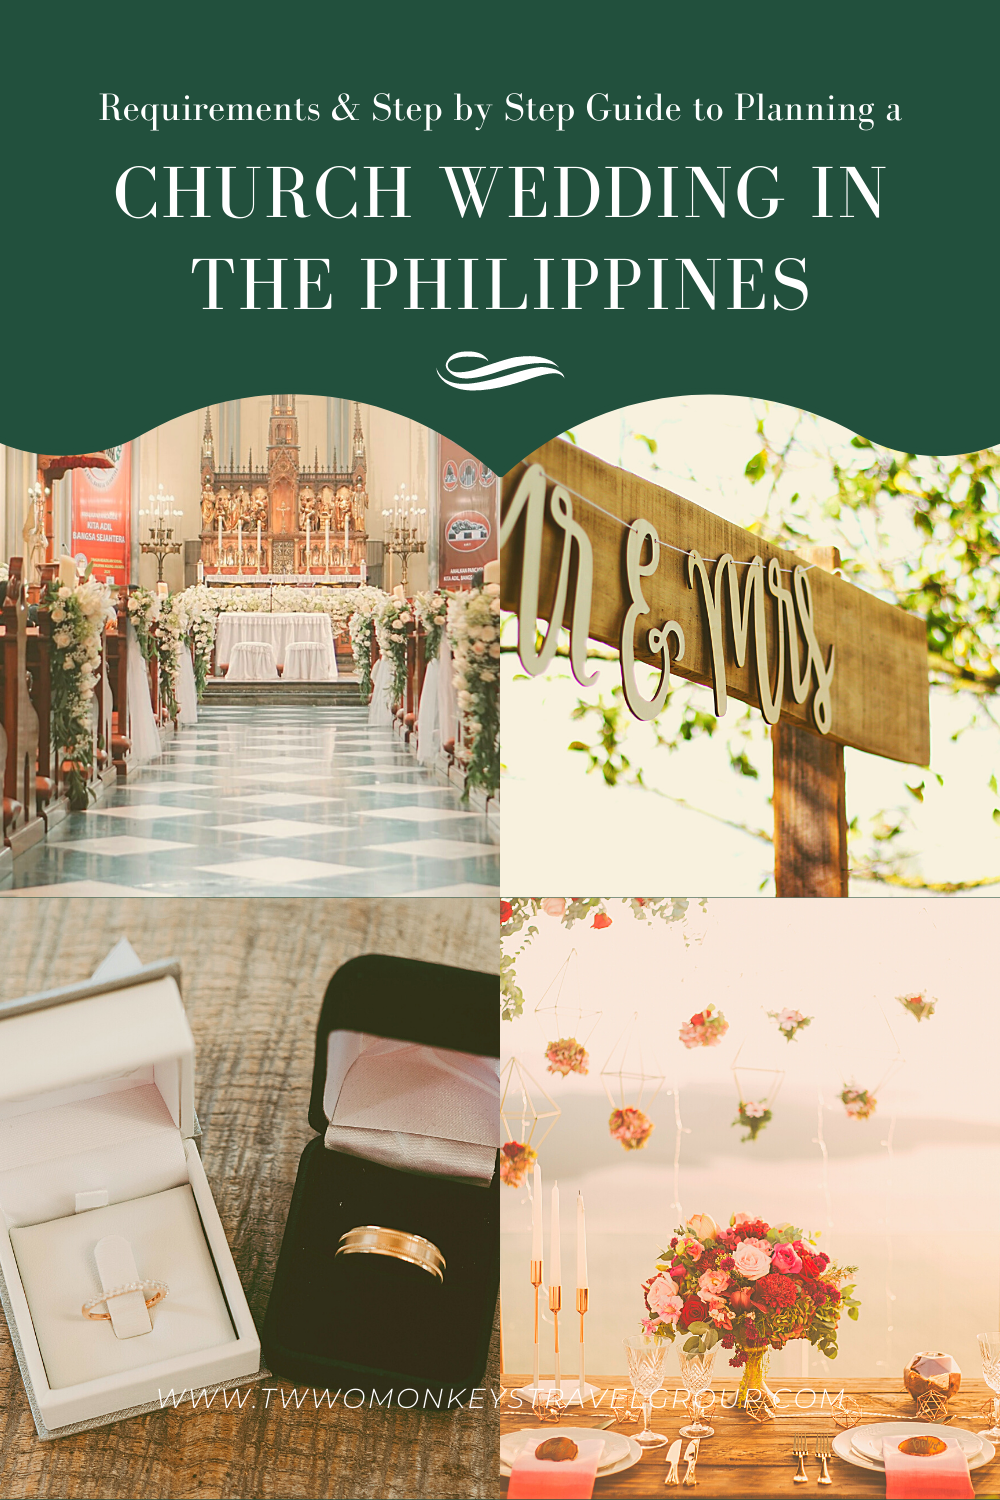 Requirements & Step by Step Guide to Planning a Church Wedding in the Philippines1